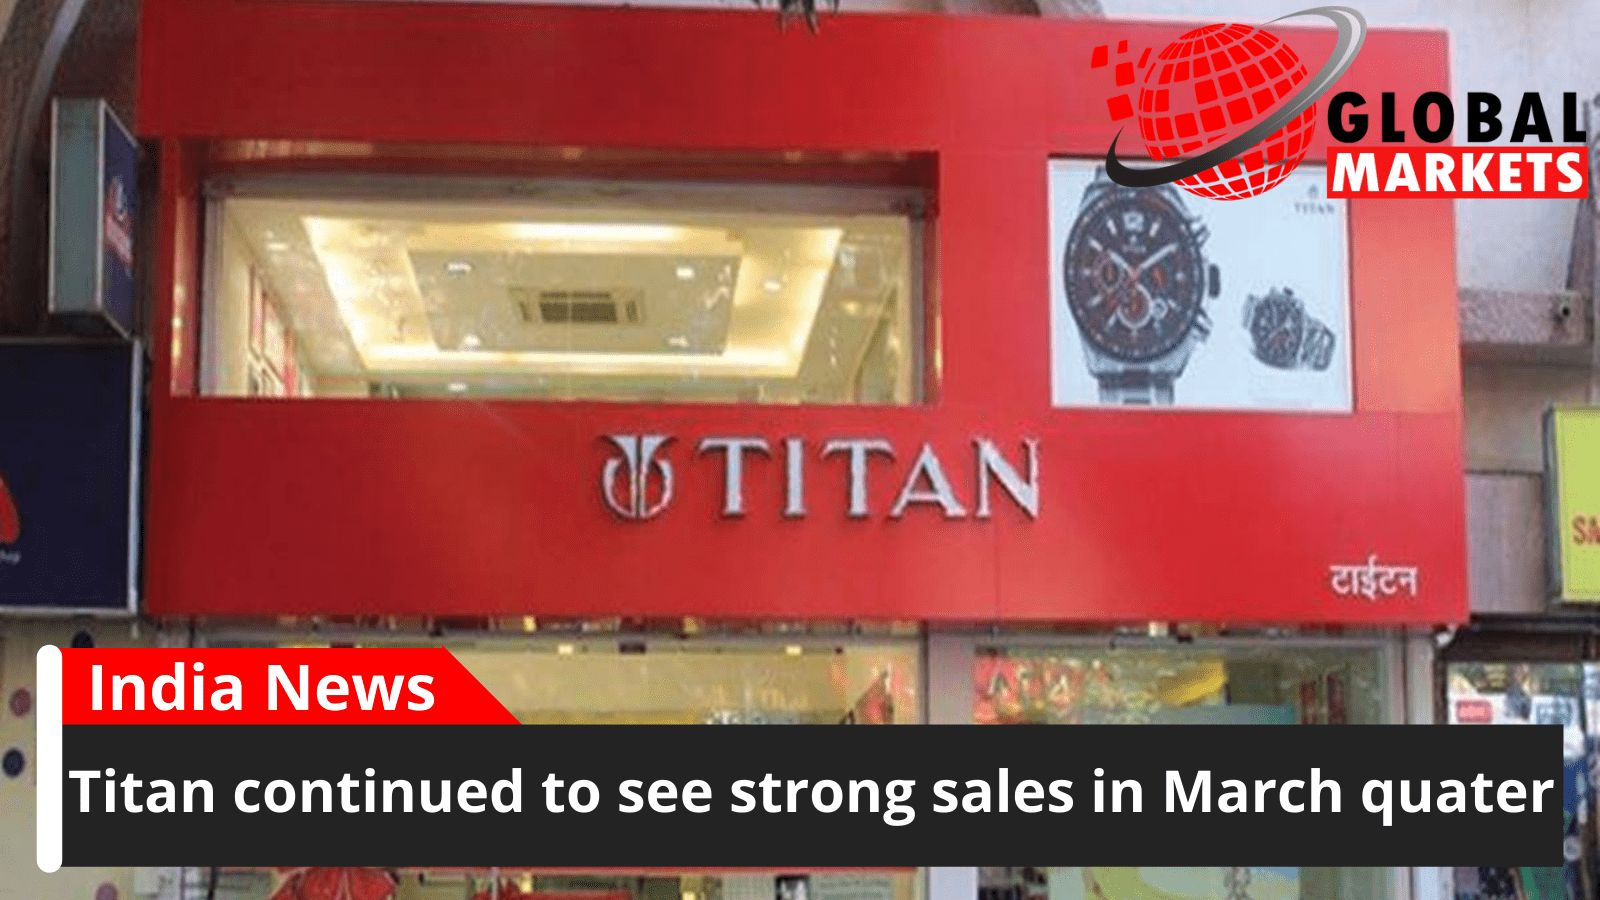 Titan continued to see strong sales in March quater